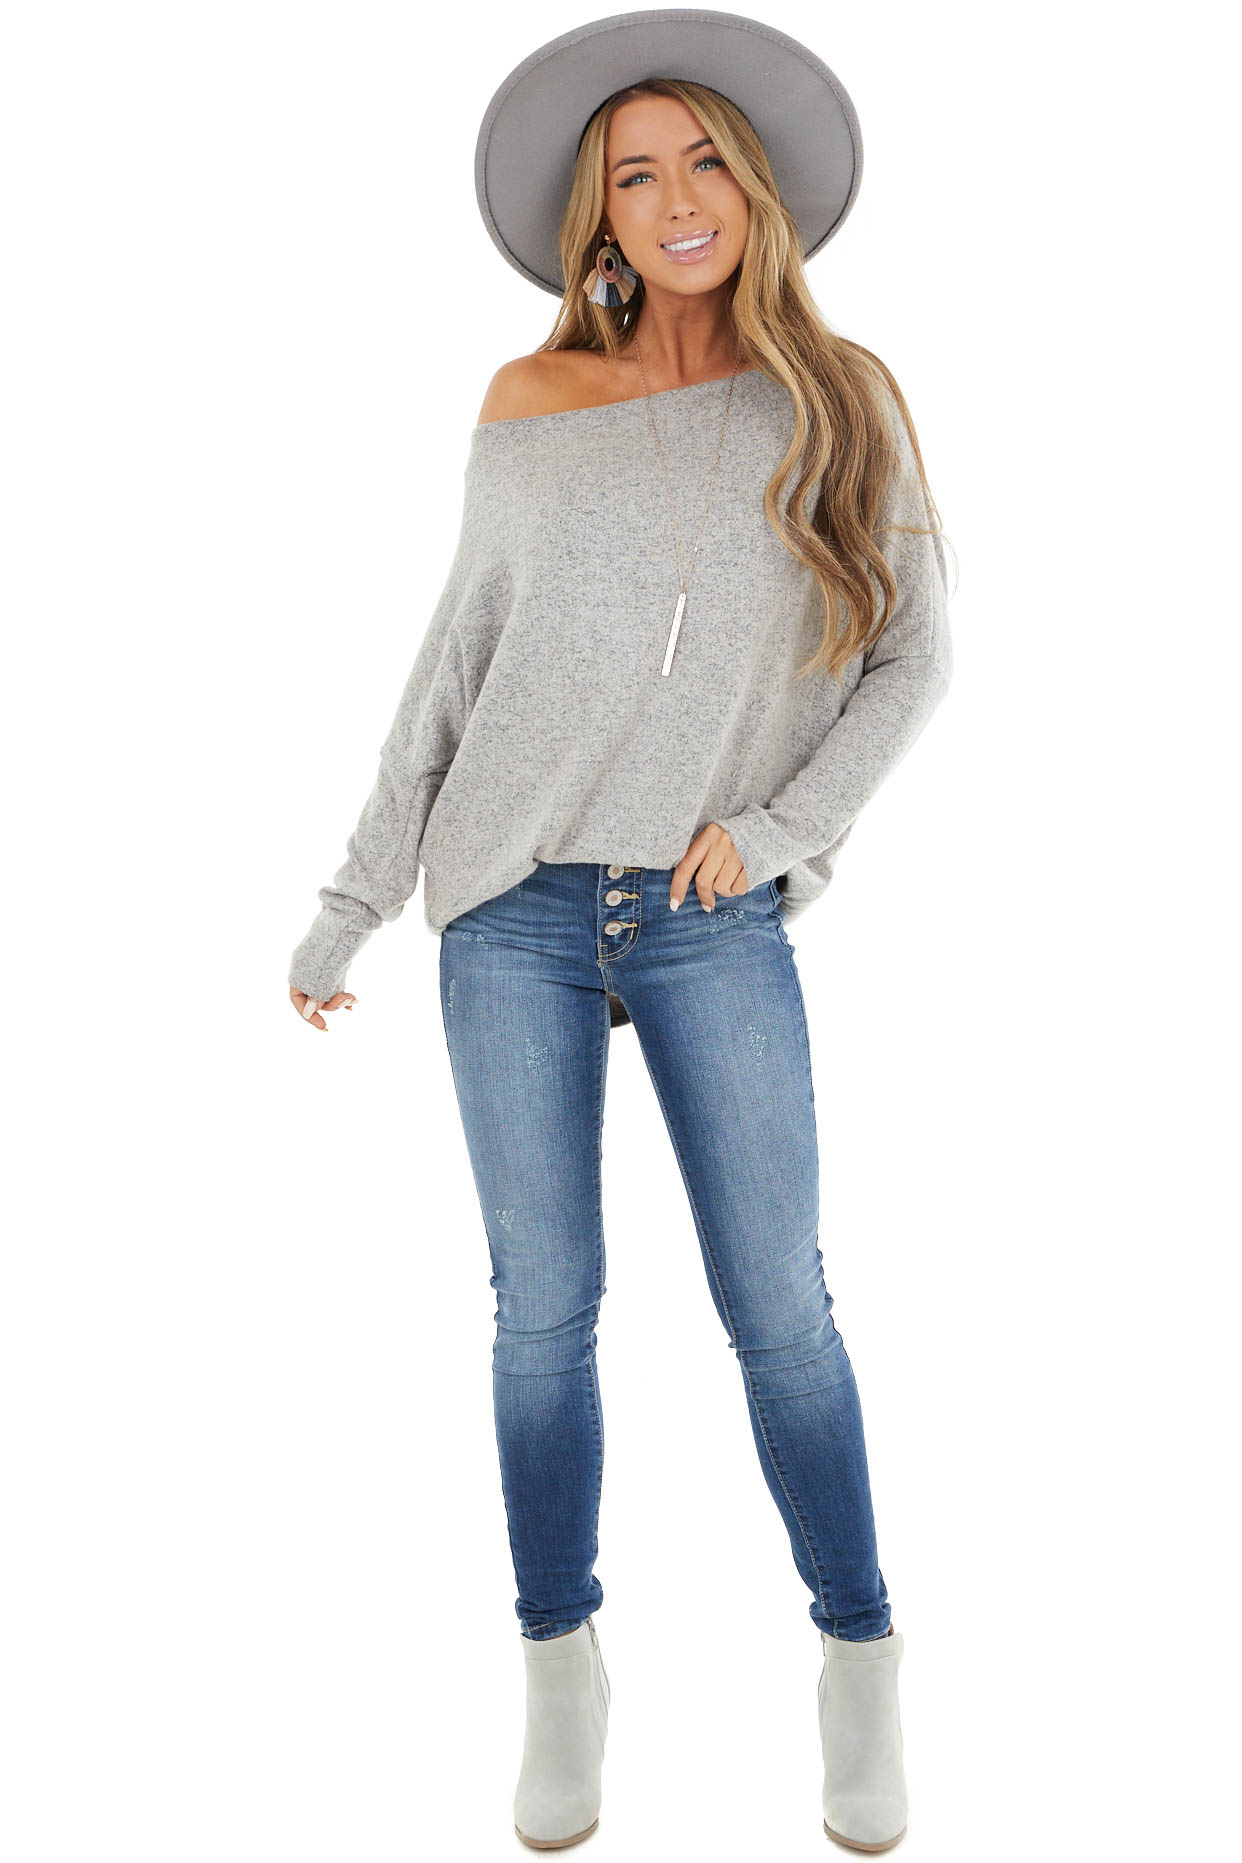 Oatmeal Off the Shoulder Knit Top with Dolman Sleeves